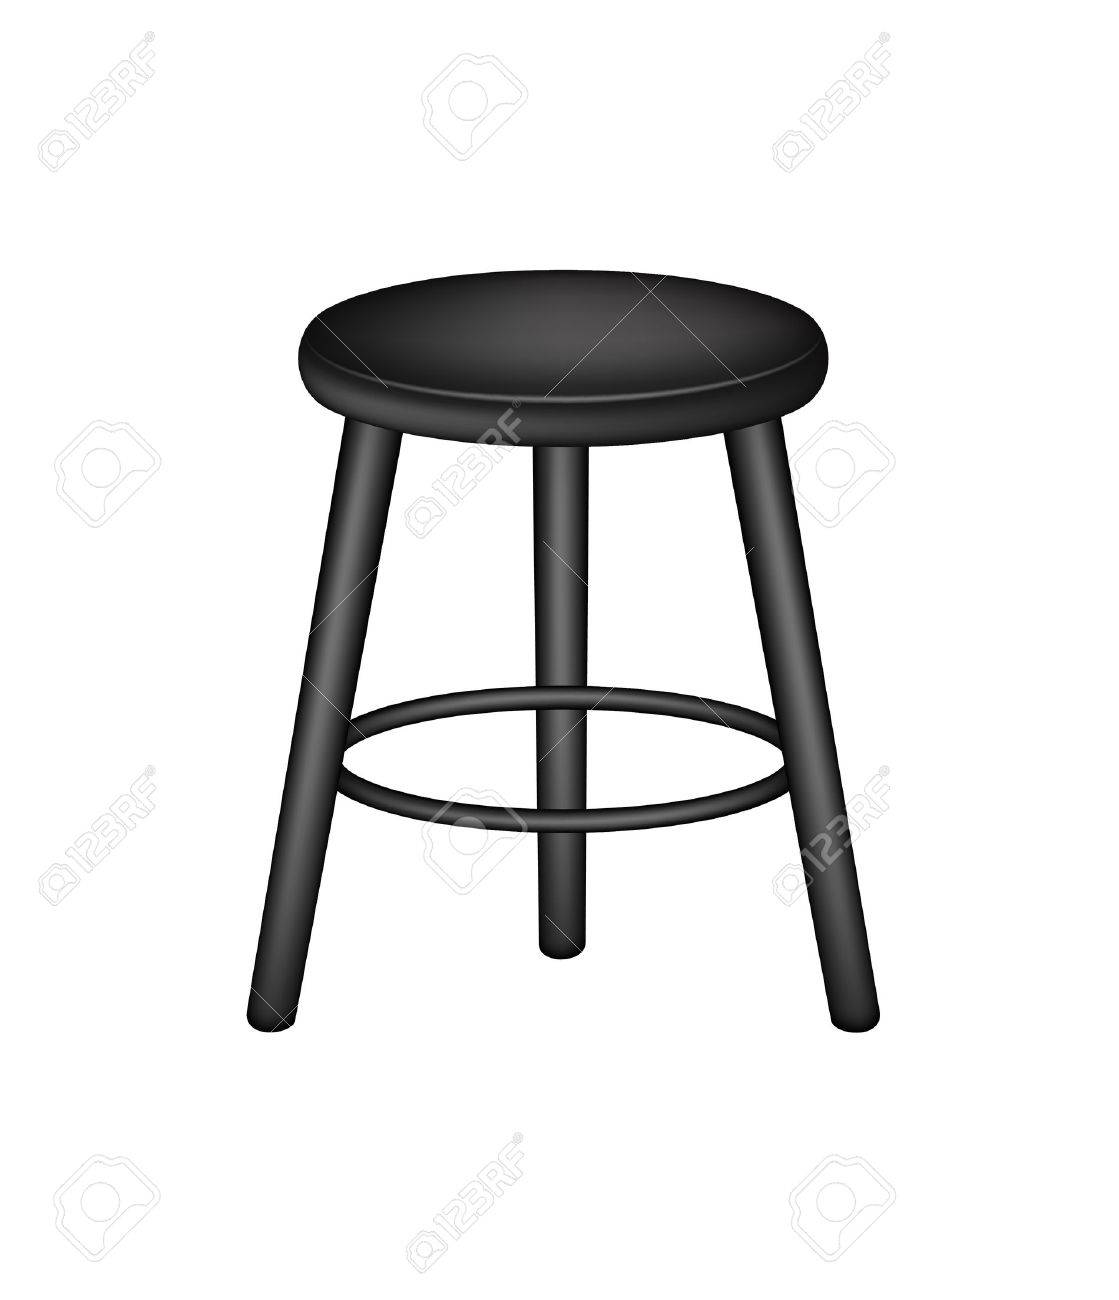 Phenomenal Retro Stool In Black Design Ocoug Best Dining Table And Chair Ideas Images Ocougorg